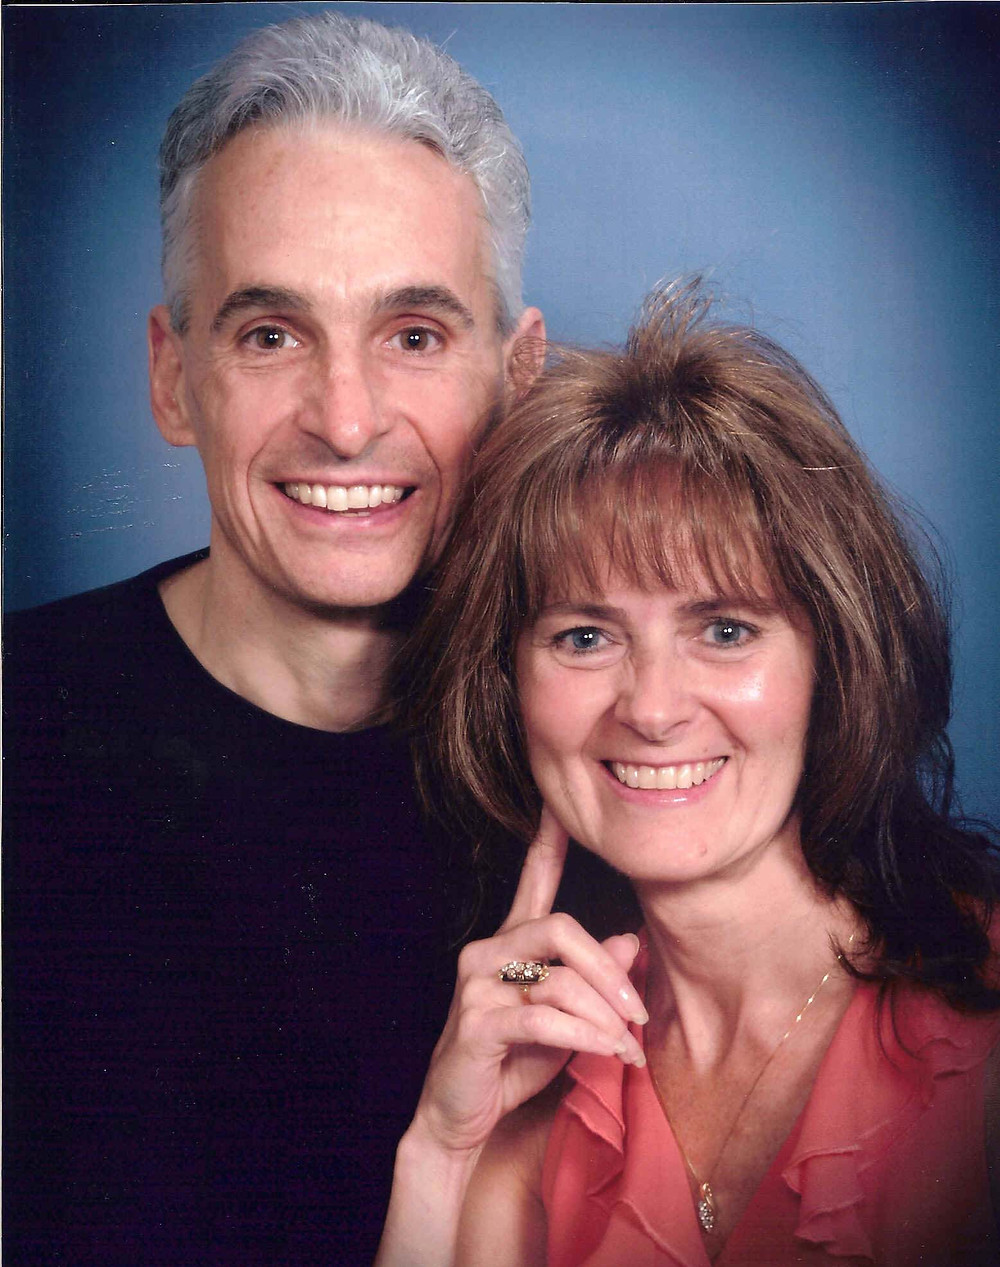 Mike and Debbie Lapina